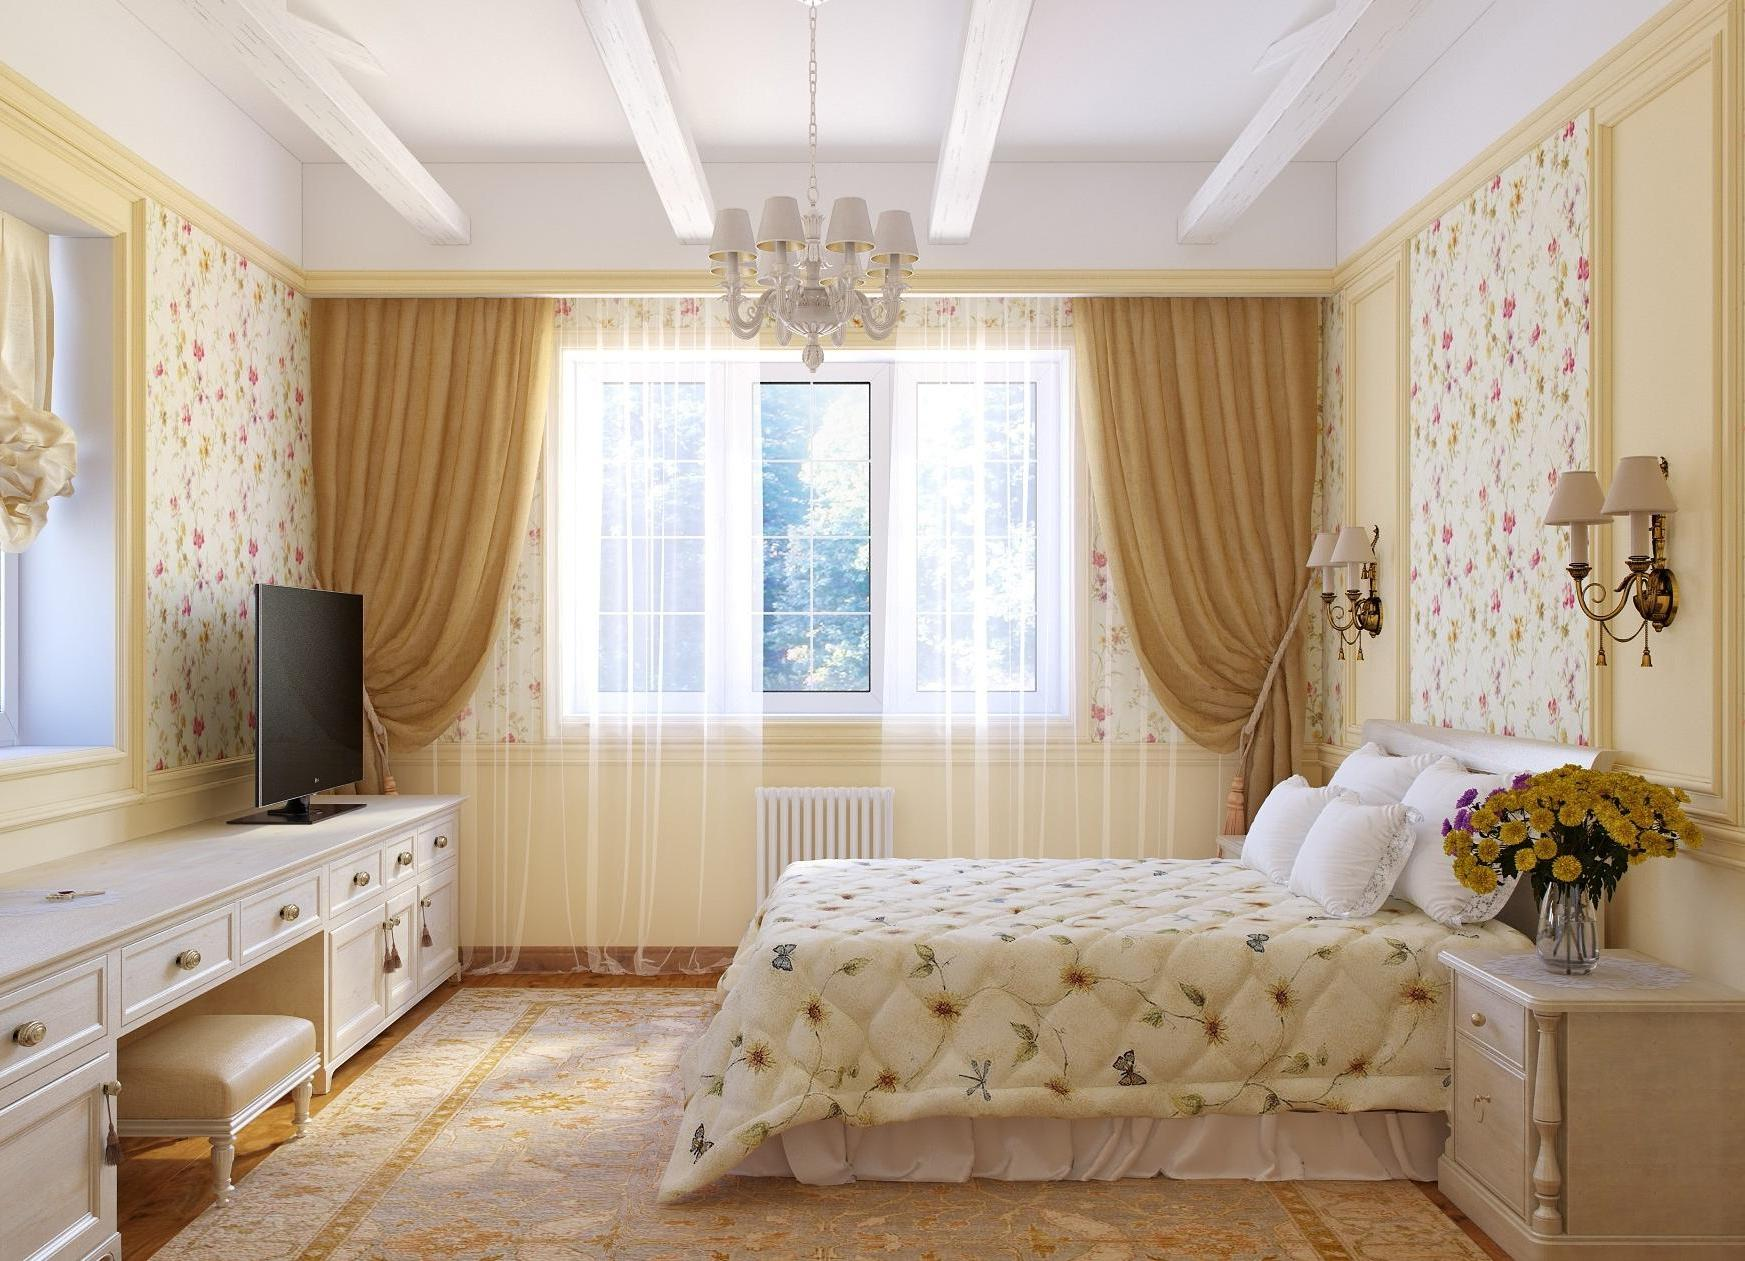 20 Beautiful Curtain Ideas for the Bedroom on Beautiful Bedroom Curtains  id=56695